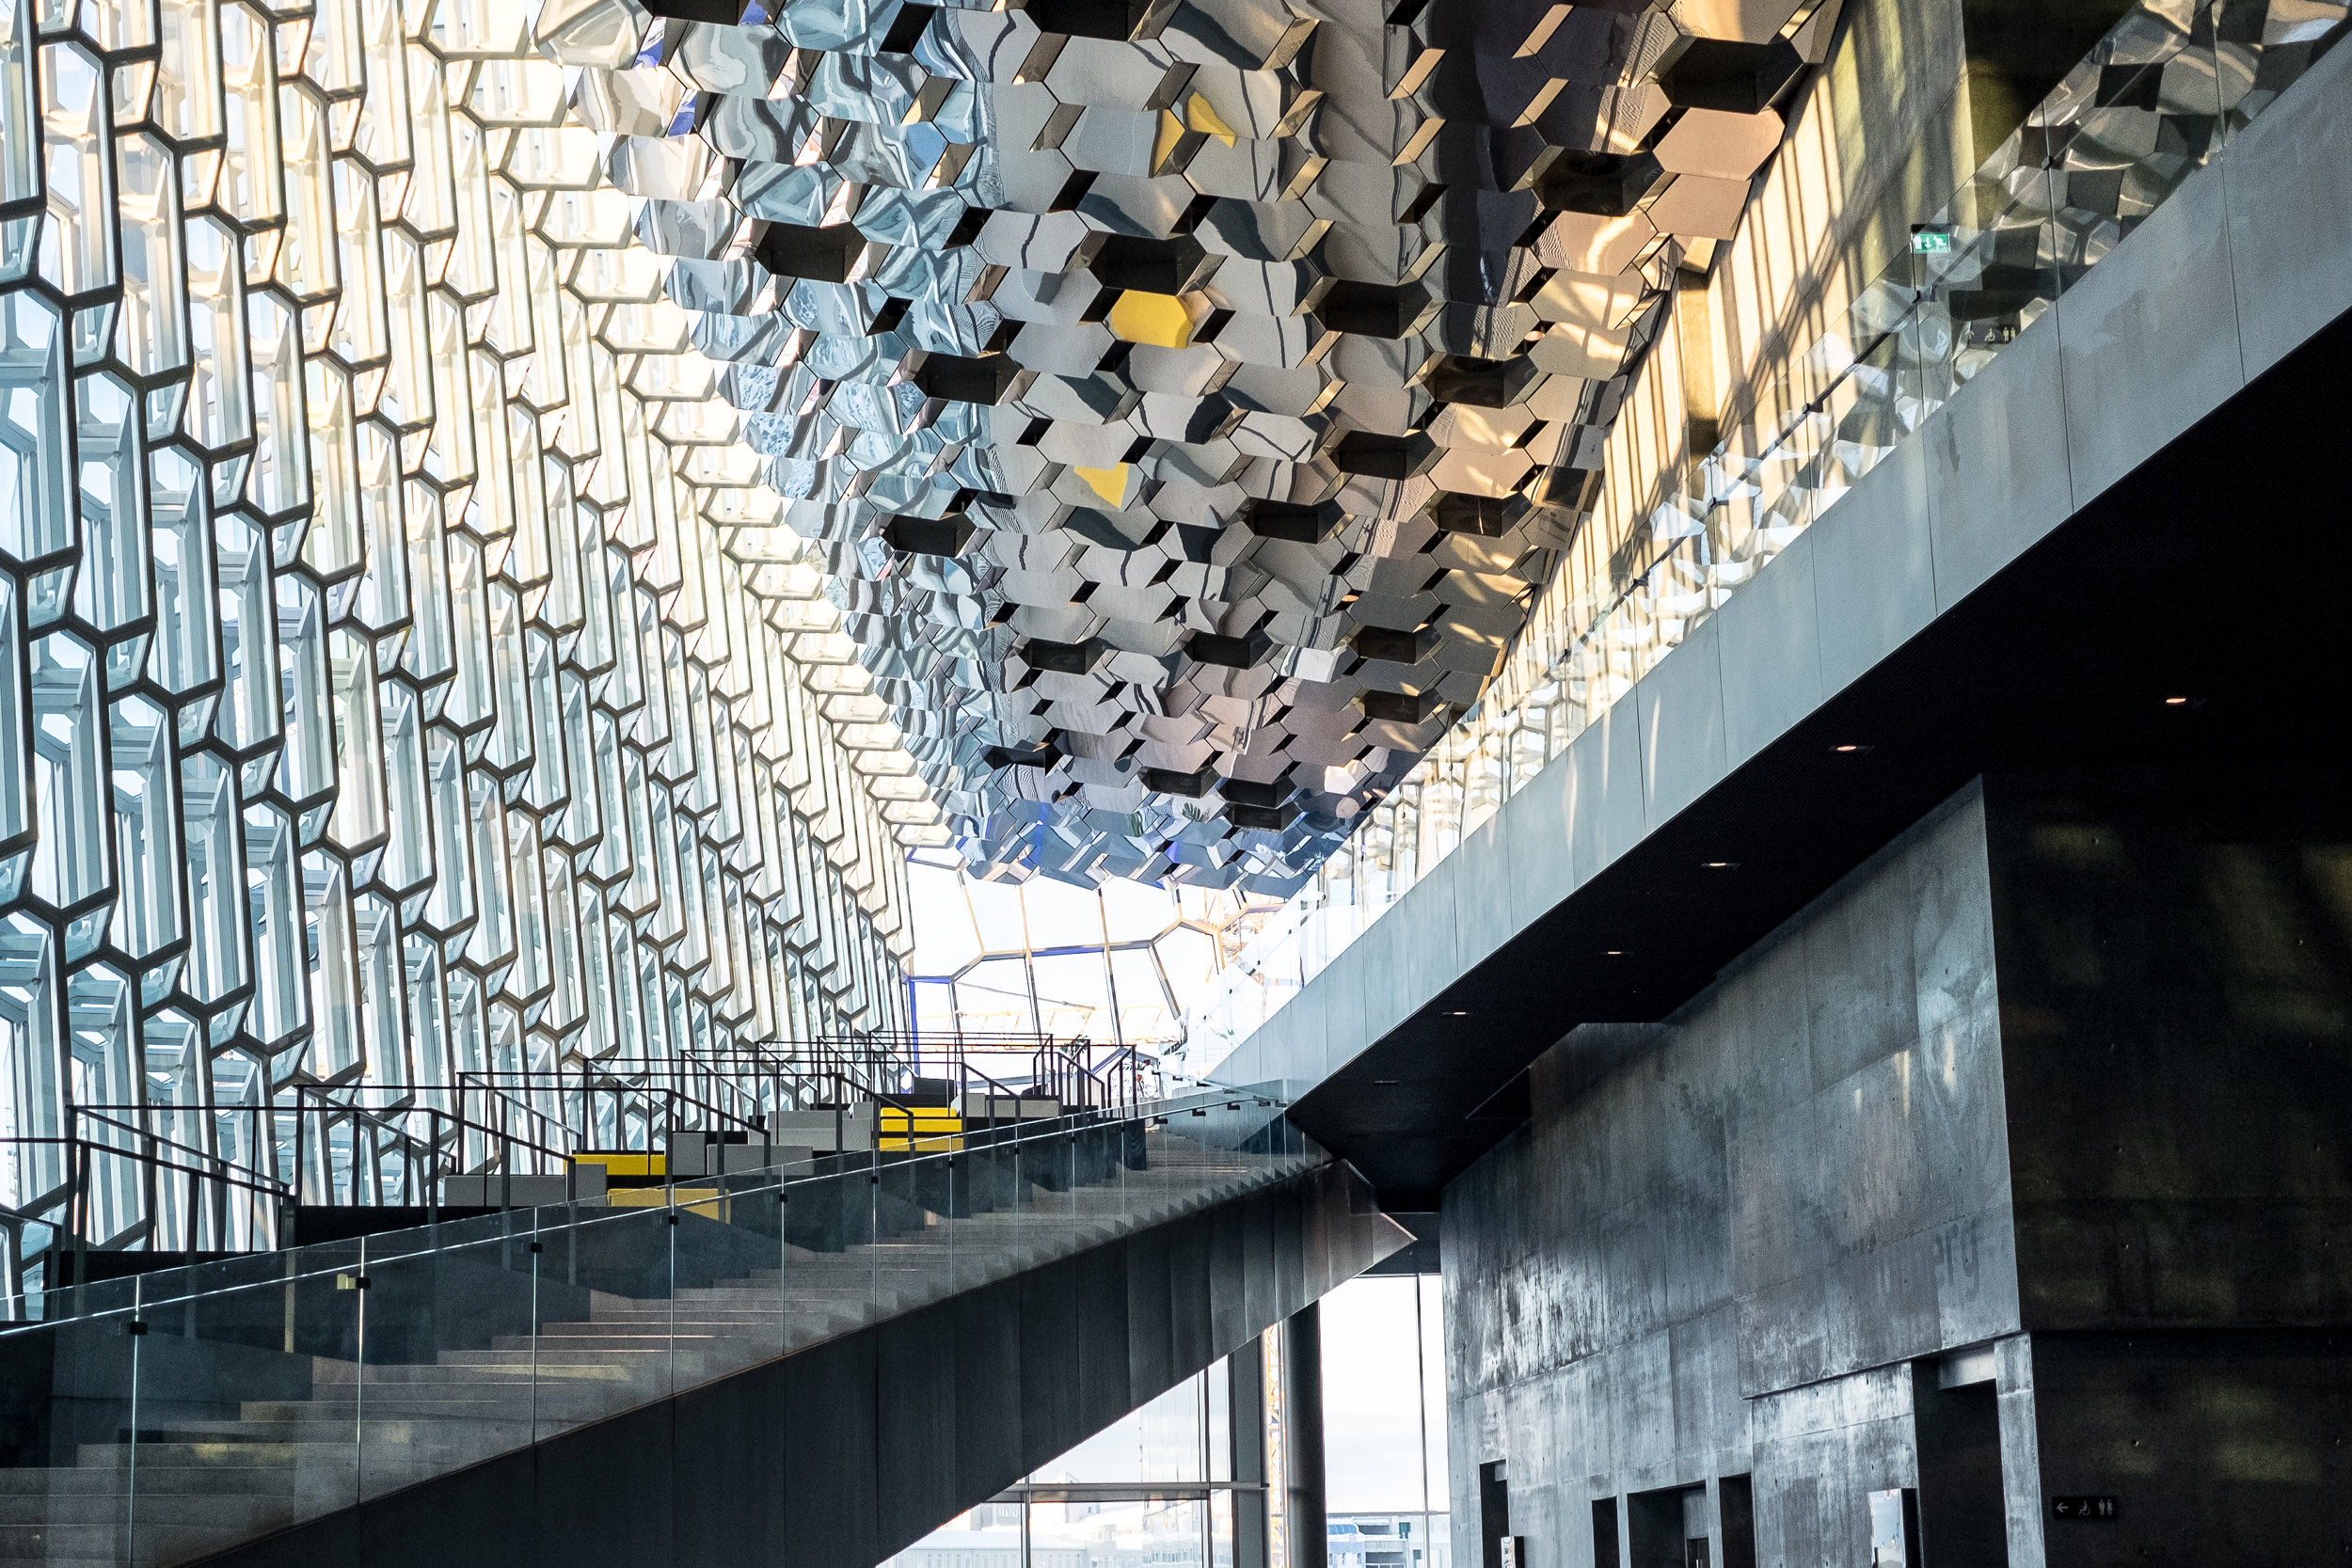 Inside Harpa Concert Hall